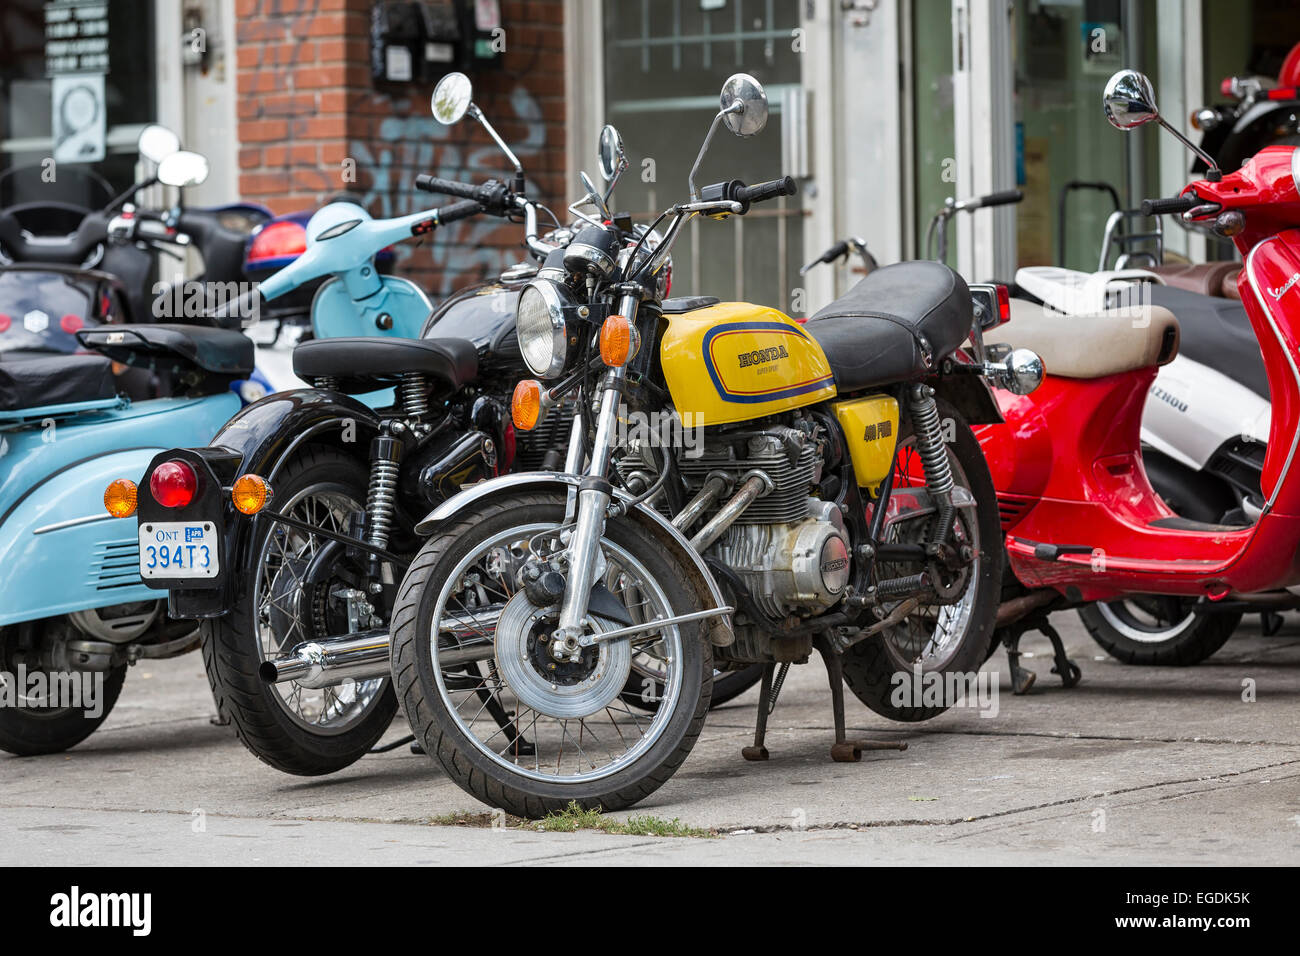 Motorcycles and scooters, downtown Toronto, Ontario, Canada - Stock Image